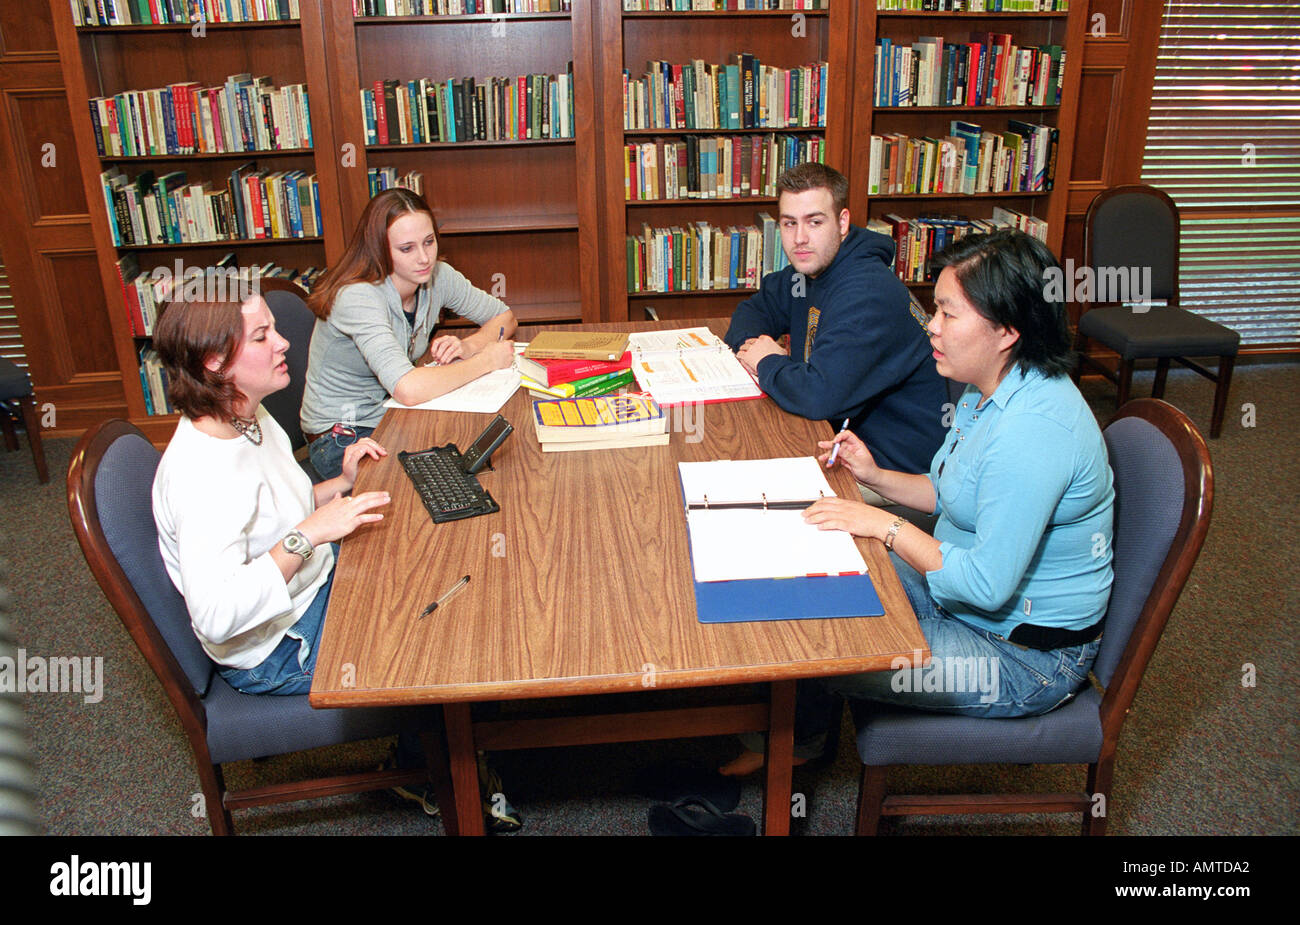 Do college courses involve group work?